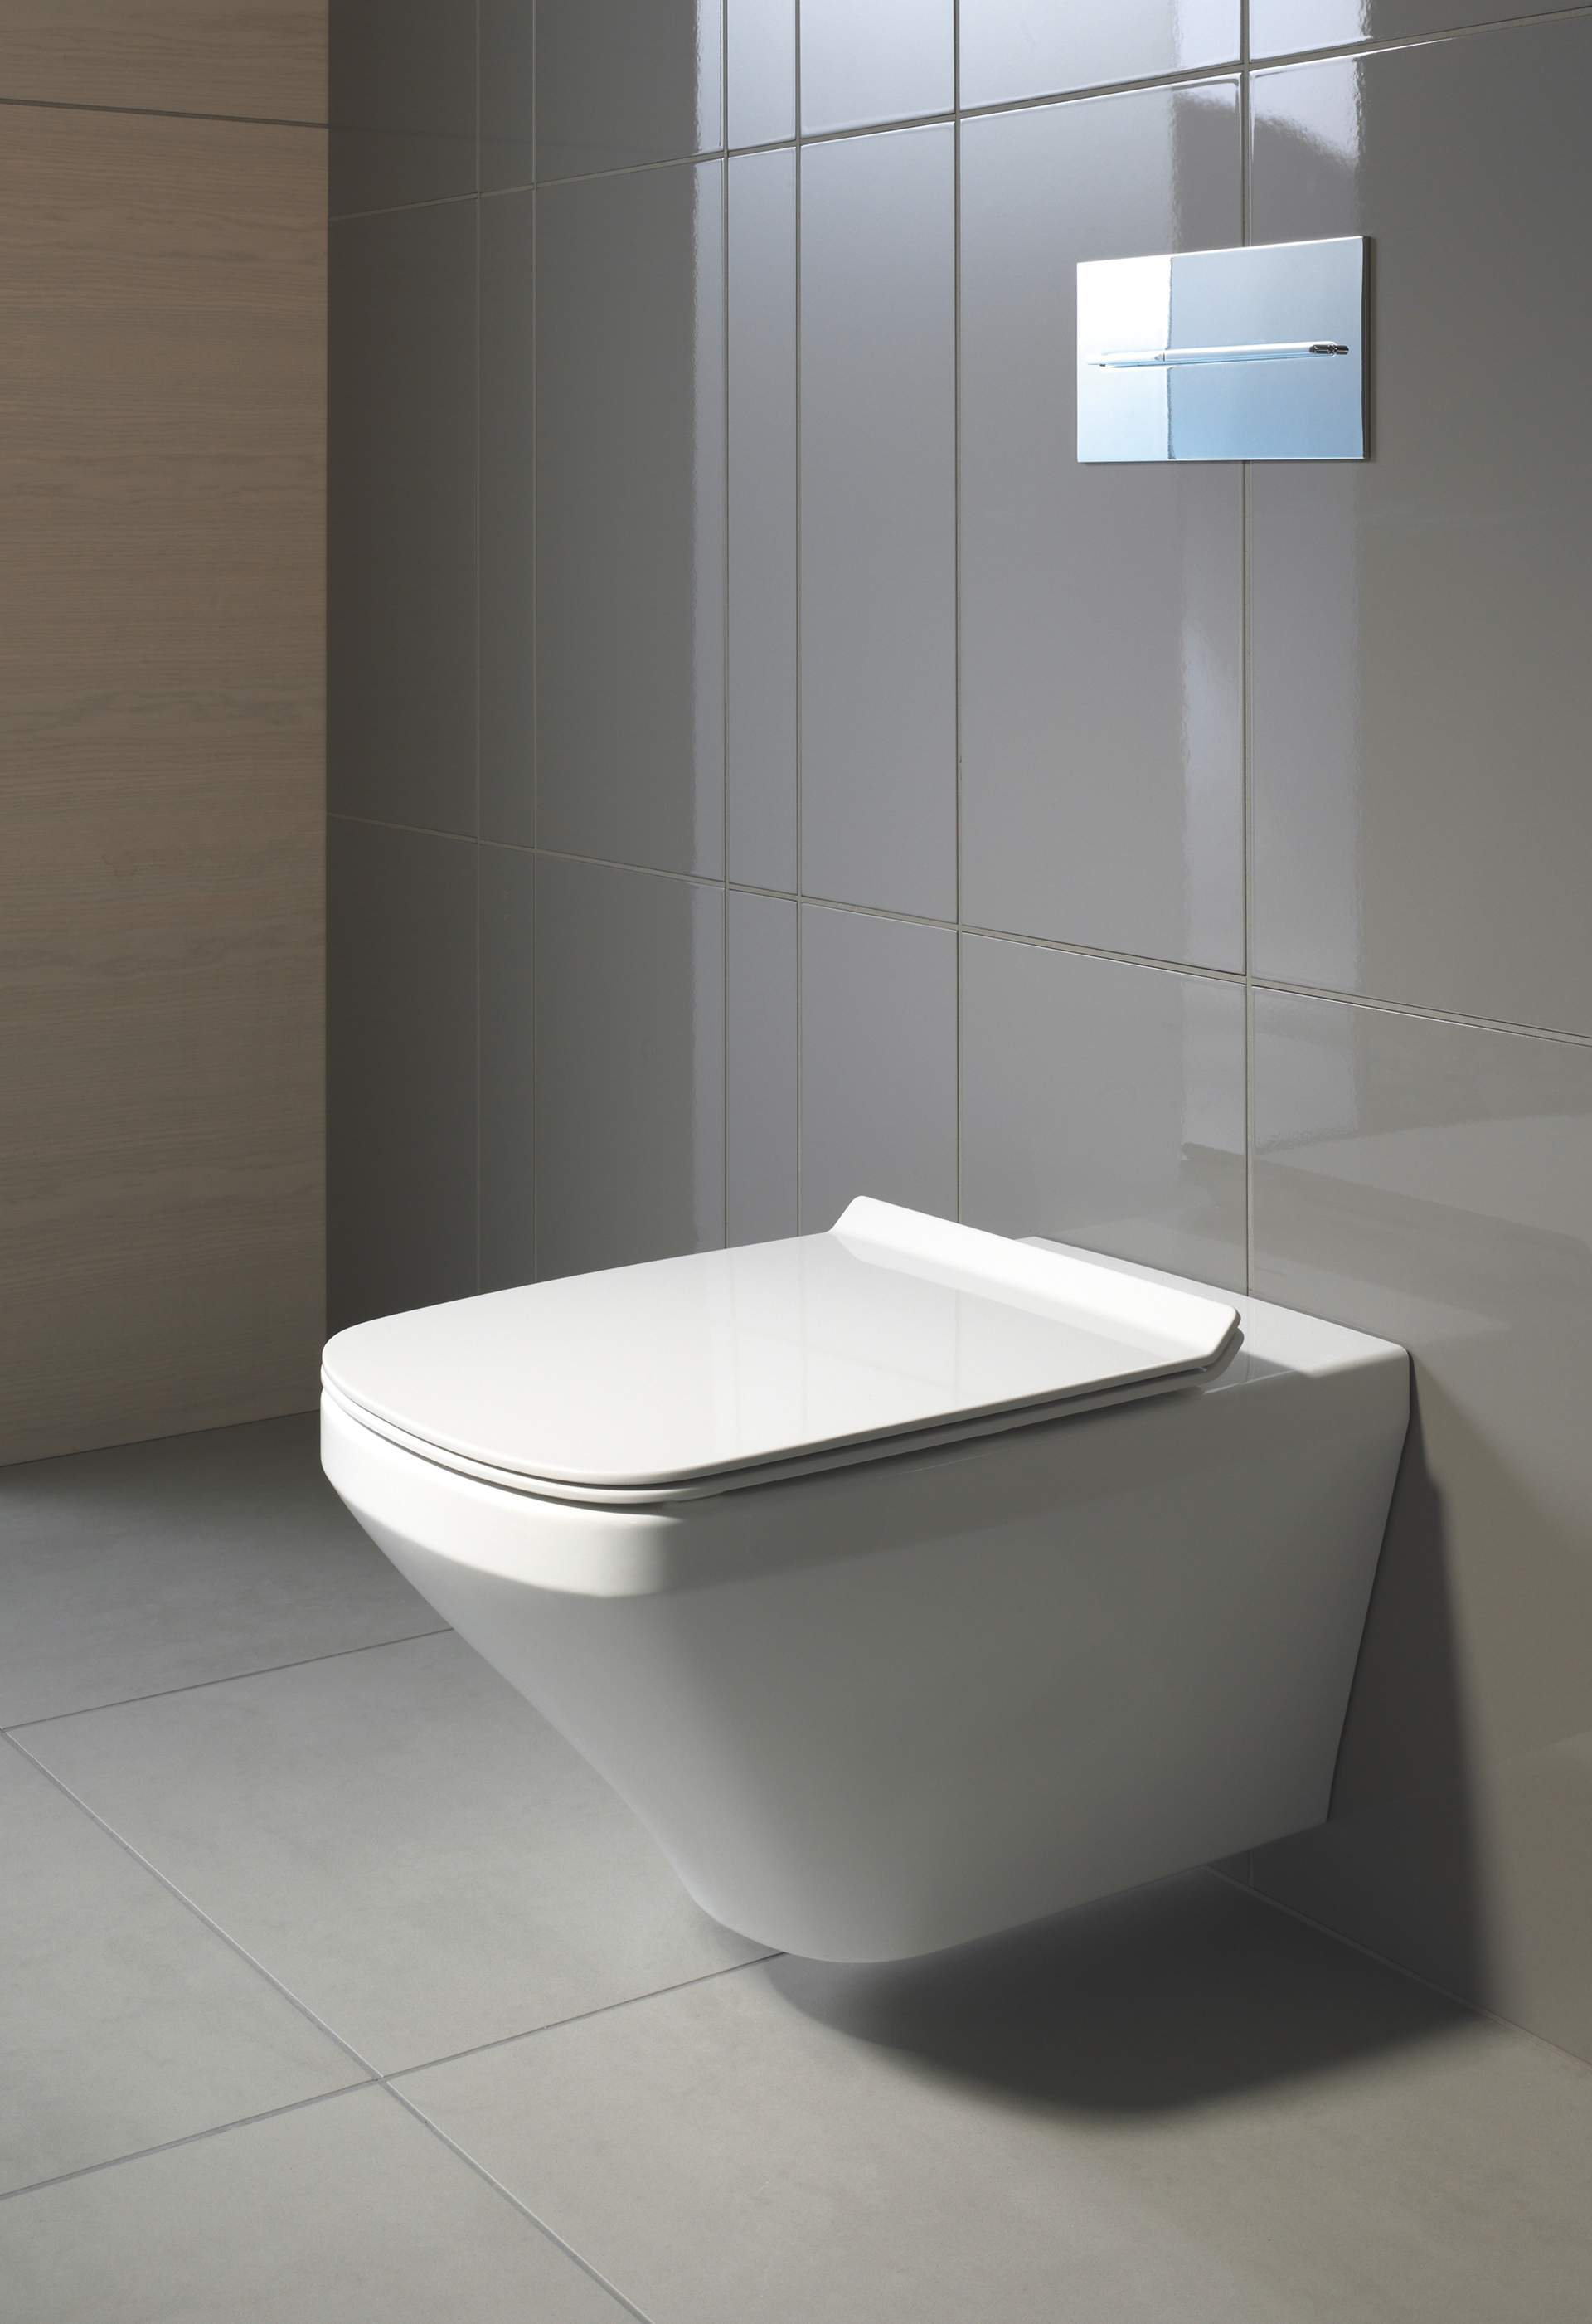 wc mosa tiles tegels grey floor bathroom toiletpot toilet badkamer mat hellgrau matte pin muurtje white